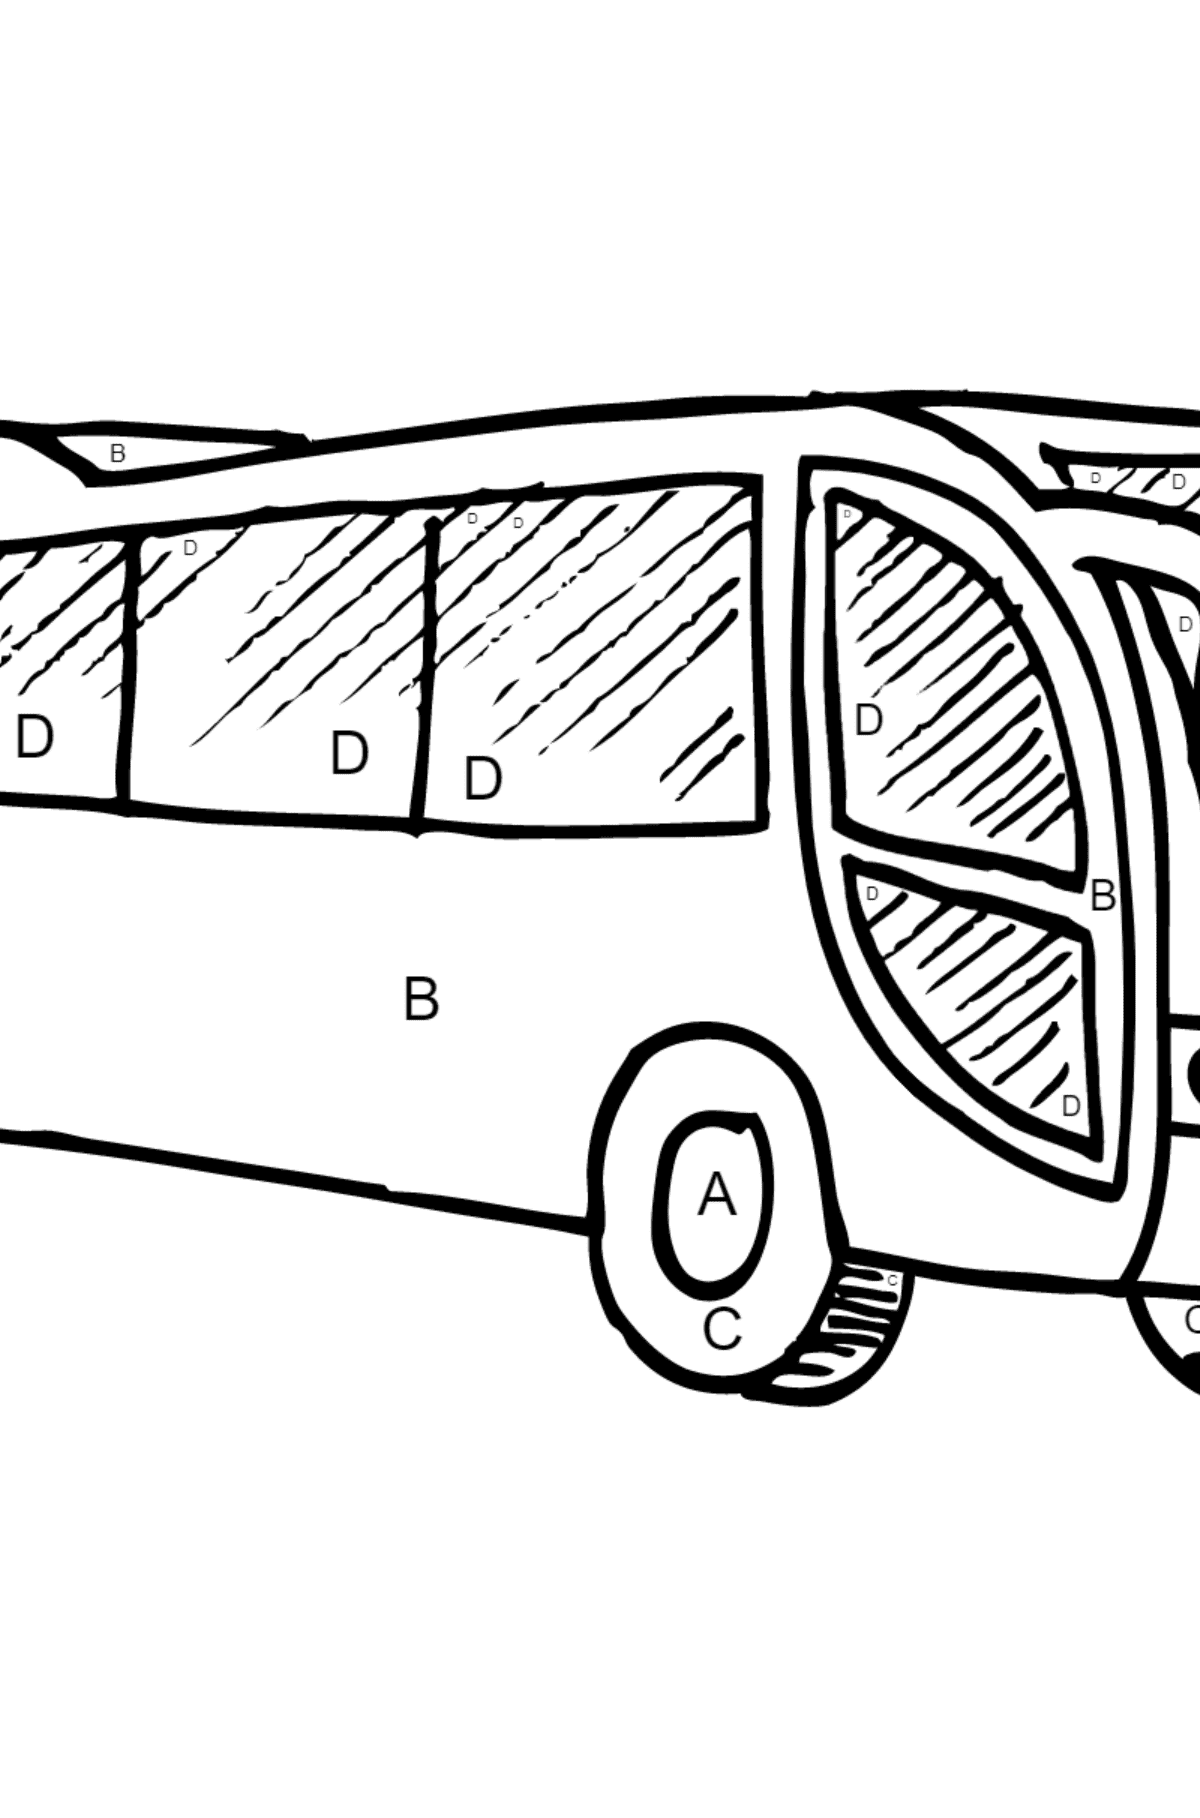 Coloring Page - A Bus is Having Rest - Coloring by Letters for Children